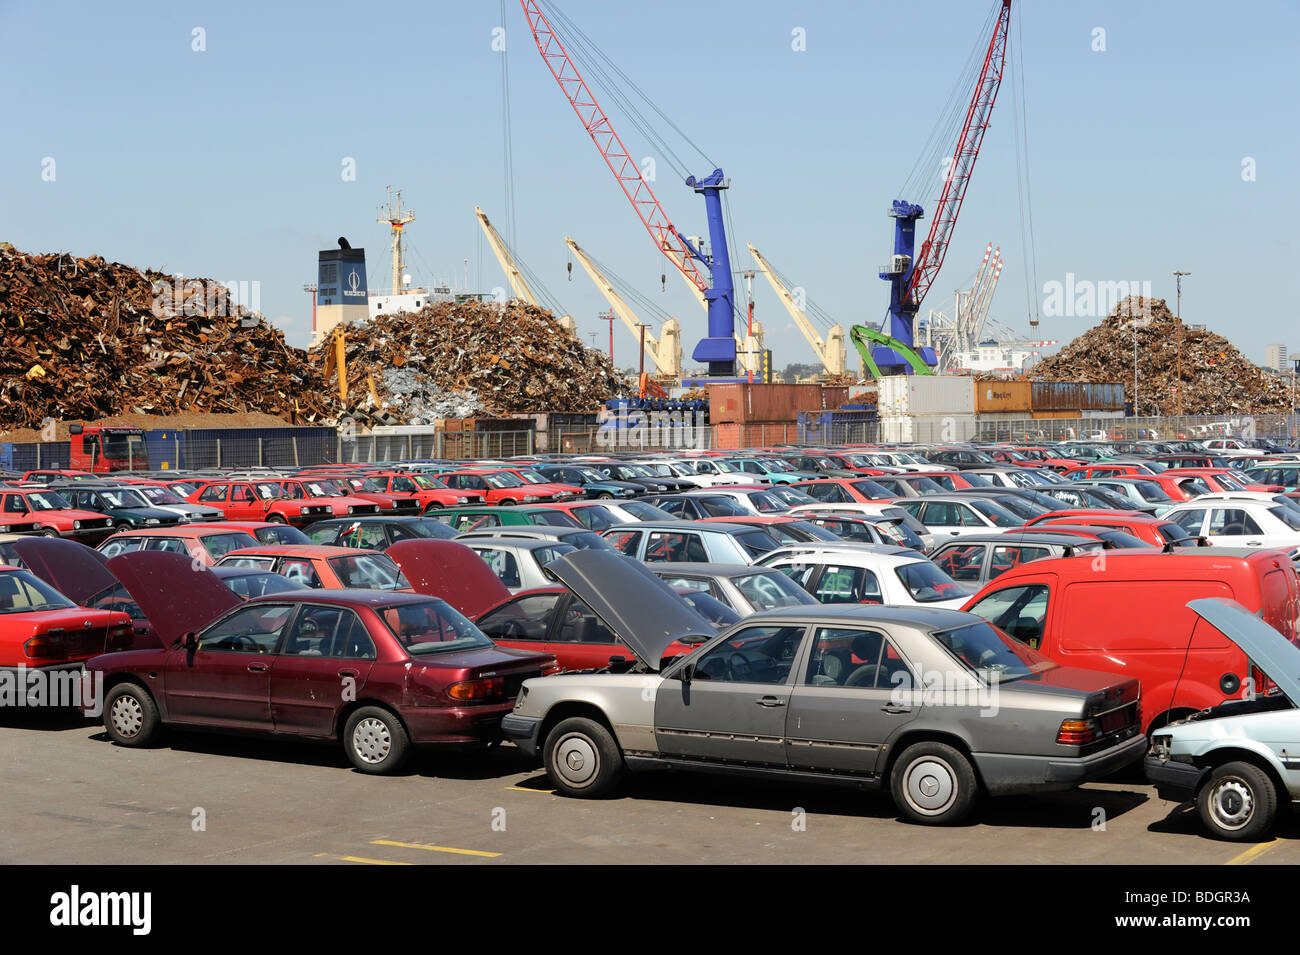 Cash For Clunkers >> Germany Hamburg , used old cars await export to africa Cotonou Benin Stock Photo: 25570254 - Alamy